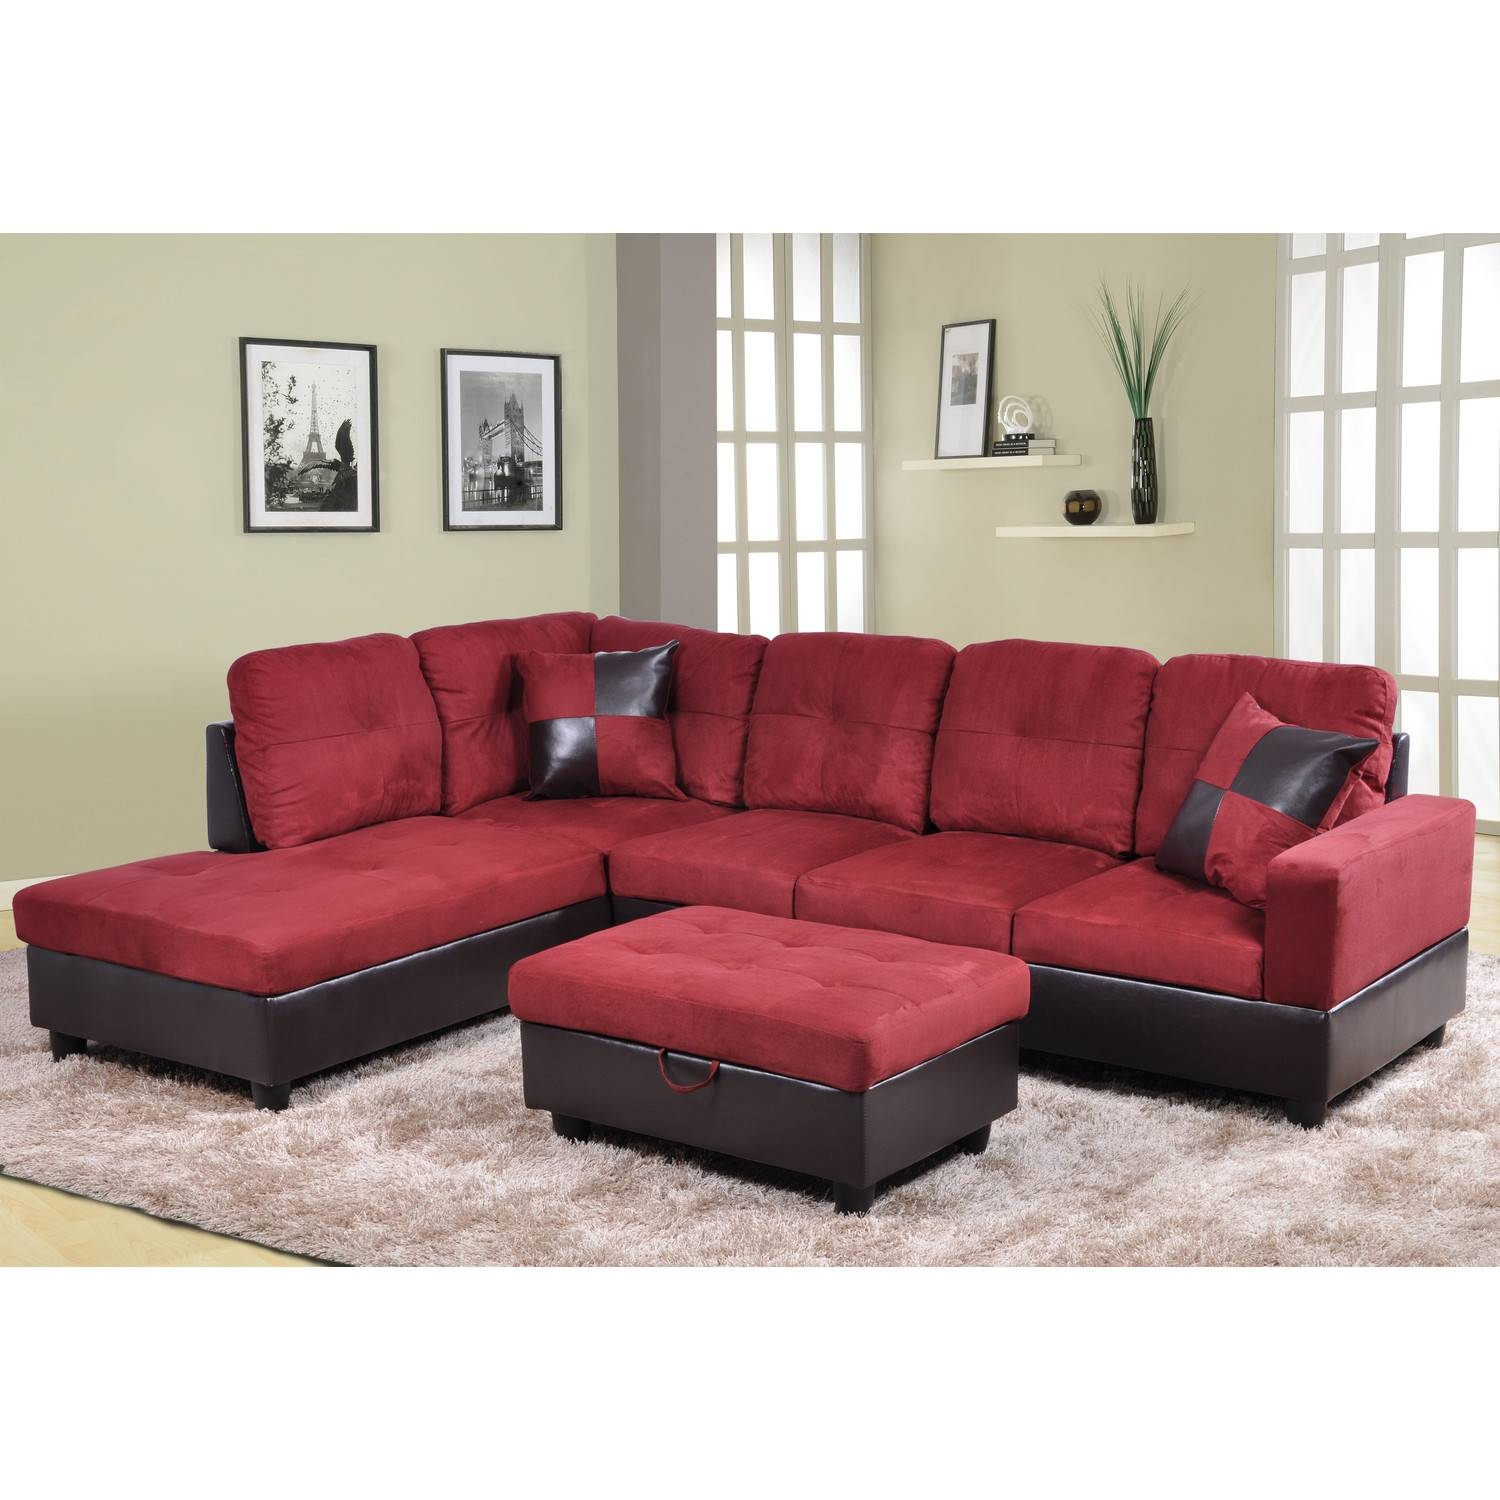 Cheap Sectional Sofa | Roselawnlutheran throughout Camel Colored Sectional Sofa (Image 16 of 30)